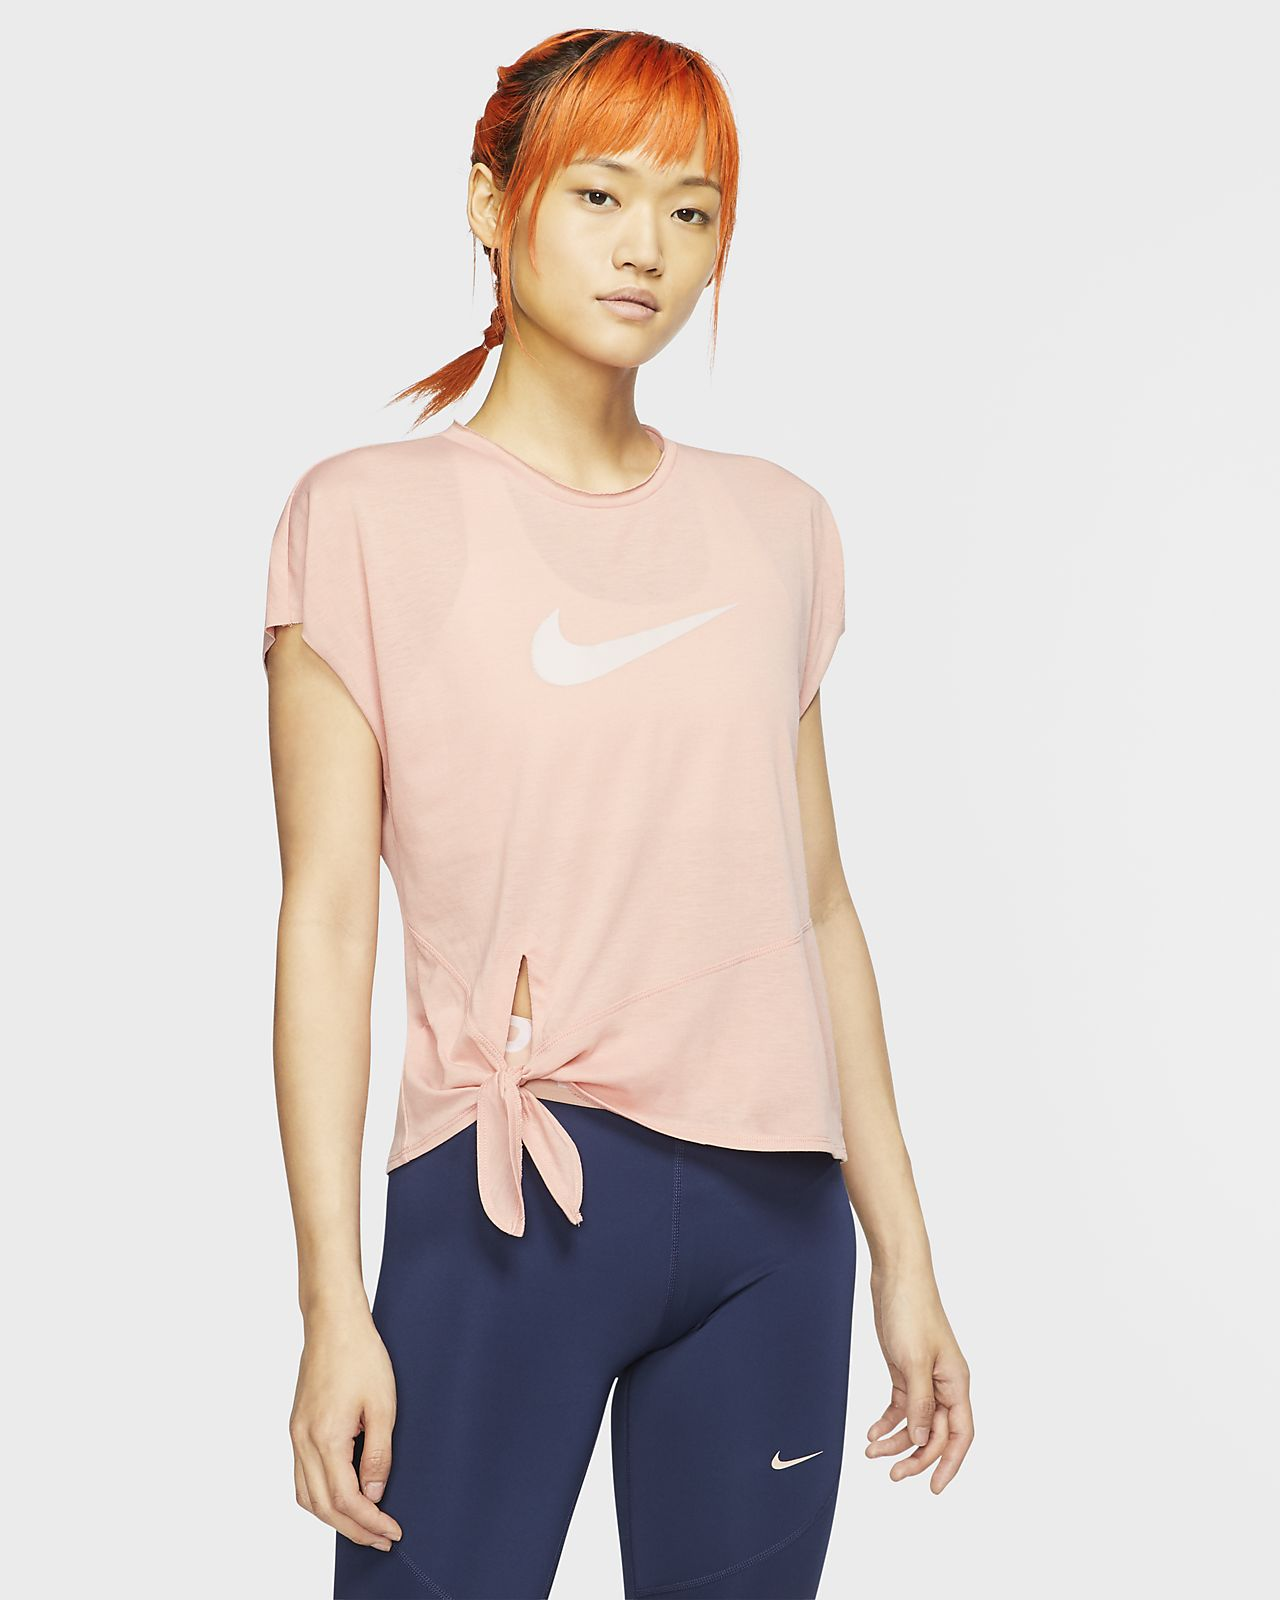 Nike Dri-FIT Kurzarm-Trainingsoberteil für Damen